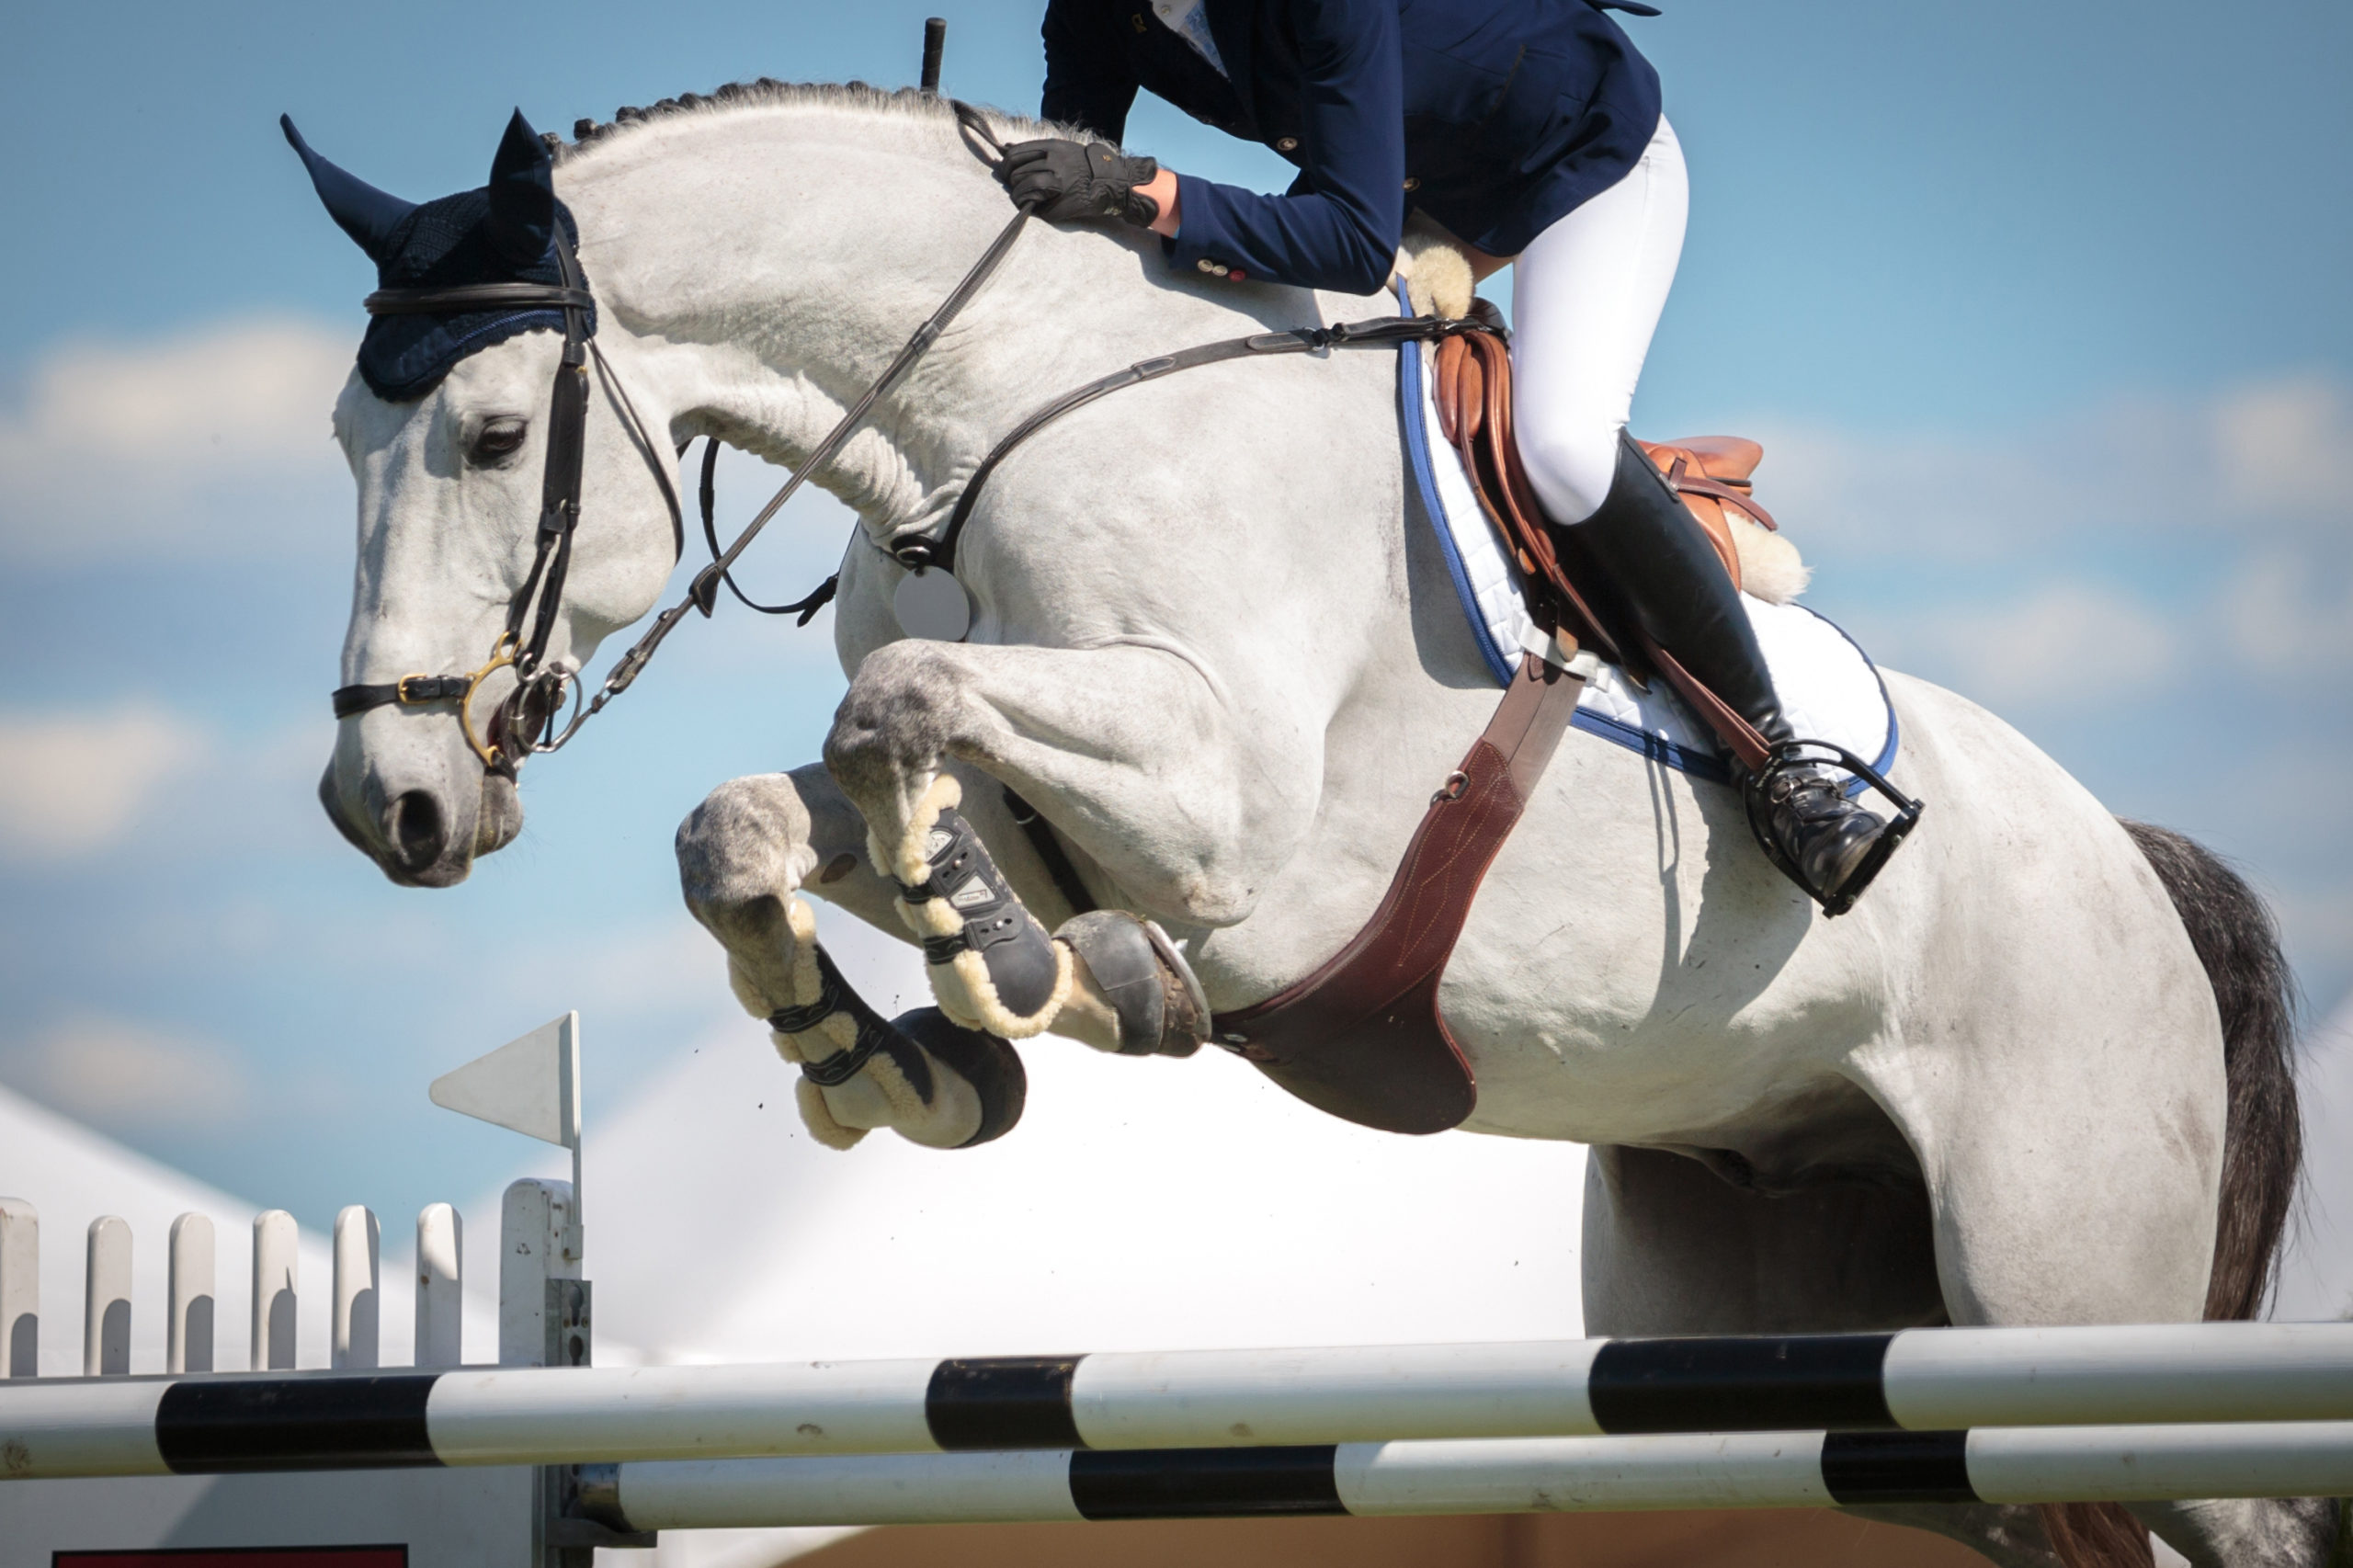 Equestrian,Sports,,Horse,Jumping,,Show,Jumping,,Horse,Riding,Themed,Photo